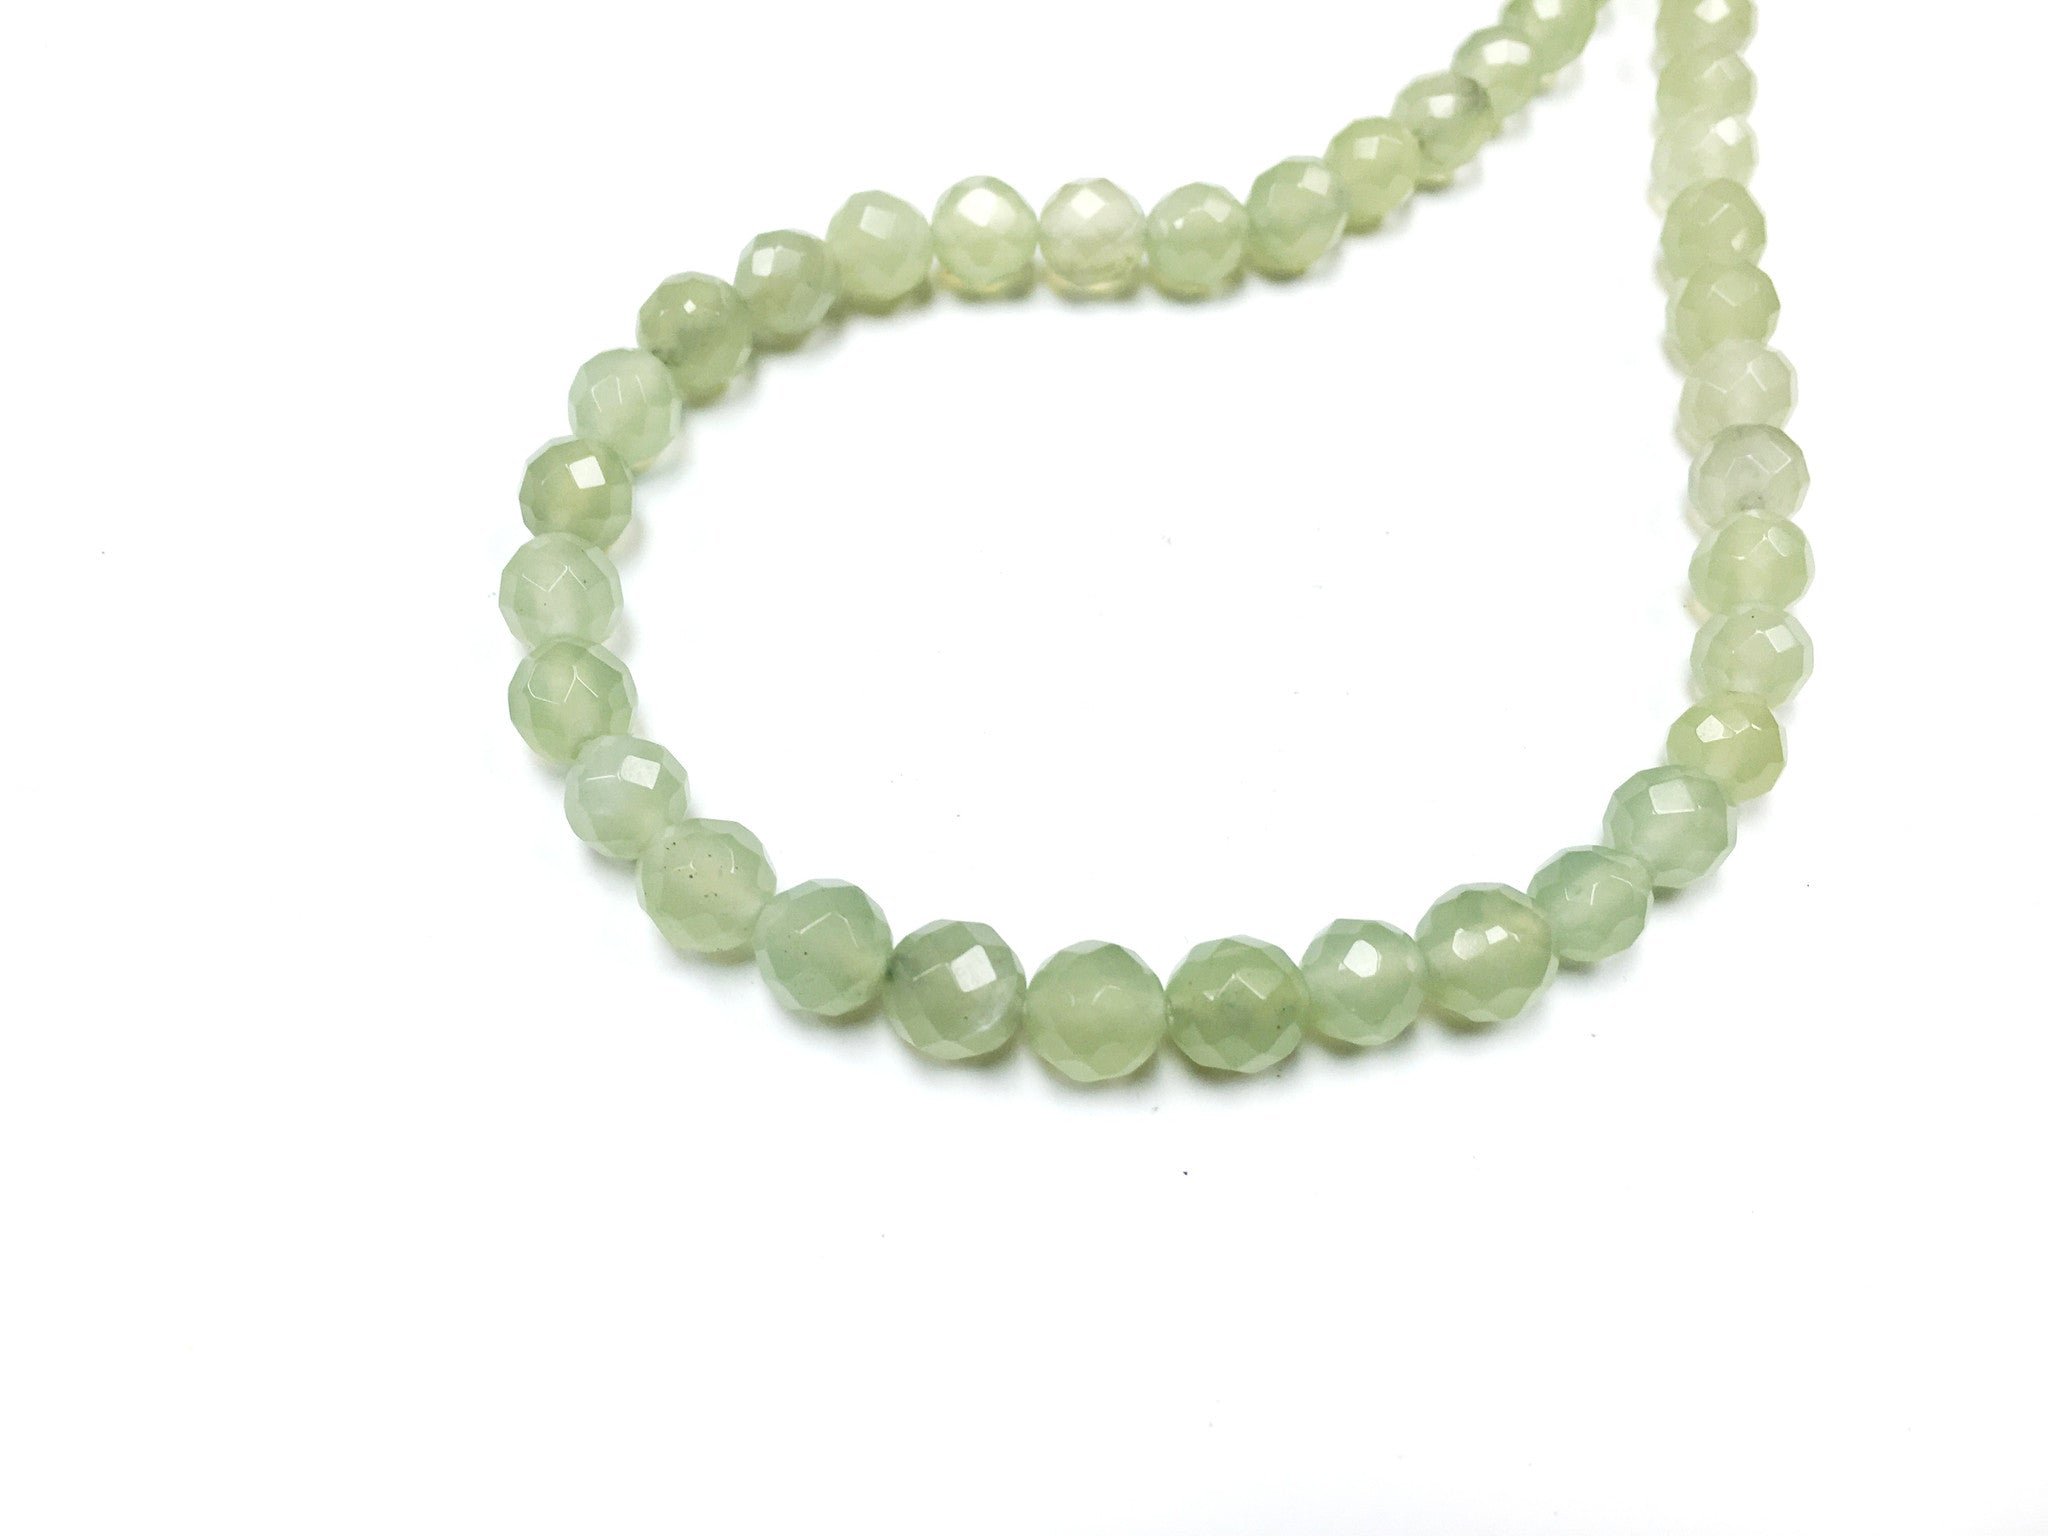 A&SB Stone - Round Stone - Faceted Natural Jade - 8mm 49 pcs